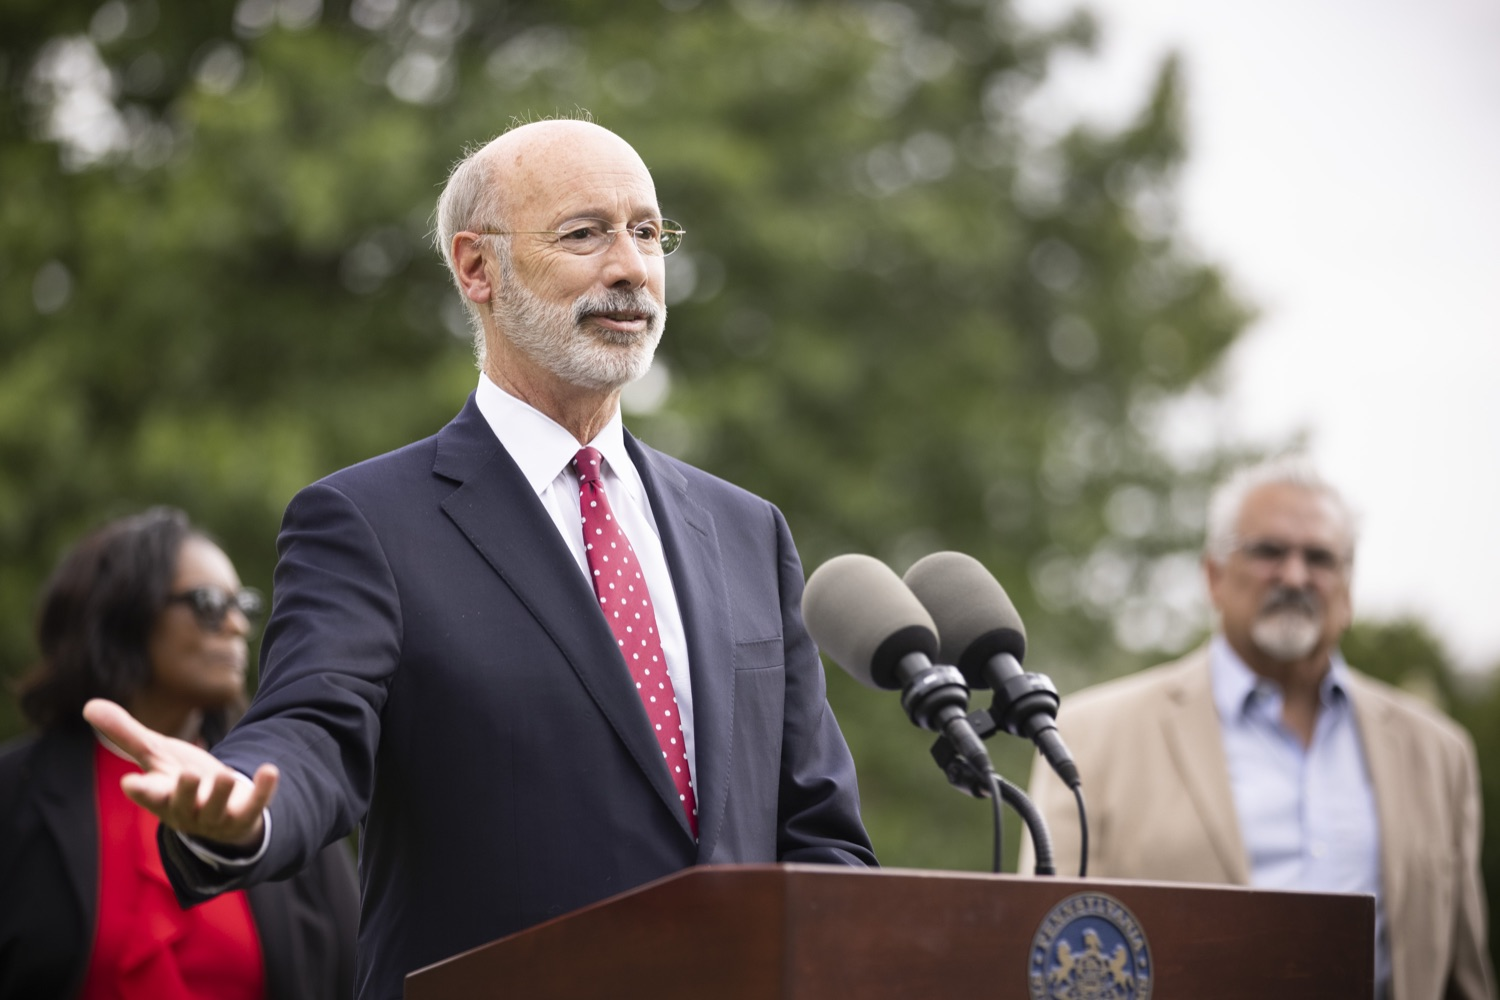 """<a href=""""https://filesource.wostreaming.net/commonwealthofpa/photo/18796_gov_charterSchool_dz_012.jpg"""" target=""""_blank"""">⇣Download Photo<br></a>Pennsylvania Governor Tom Wolf speaking with the press.  With overwhelming support among school districts for his charter school accountability plan, Governor Tom Wolf visited J.P. McCaskey High School in Lancaster today to discuss his bipartisan proposal that saves an estimated $395 million a year. Lancaster, PA  June 01, 2021"""